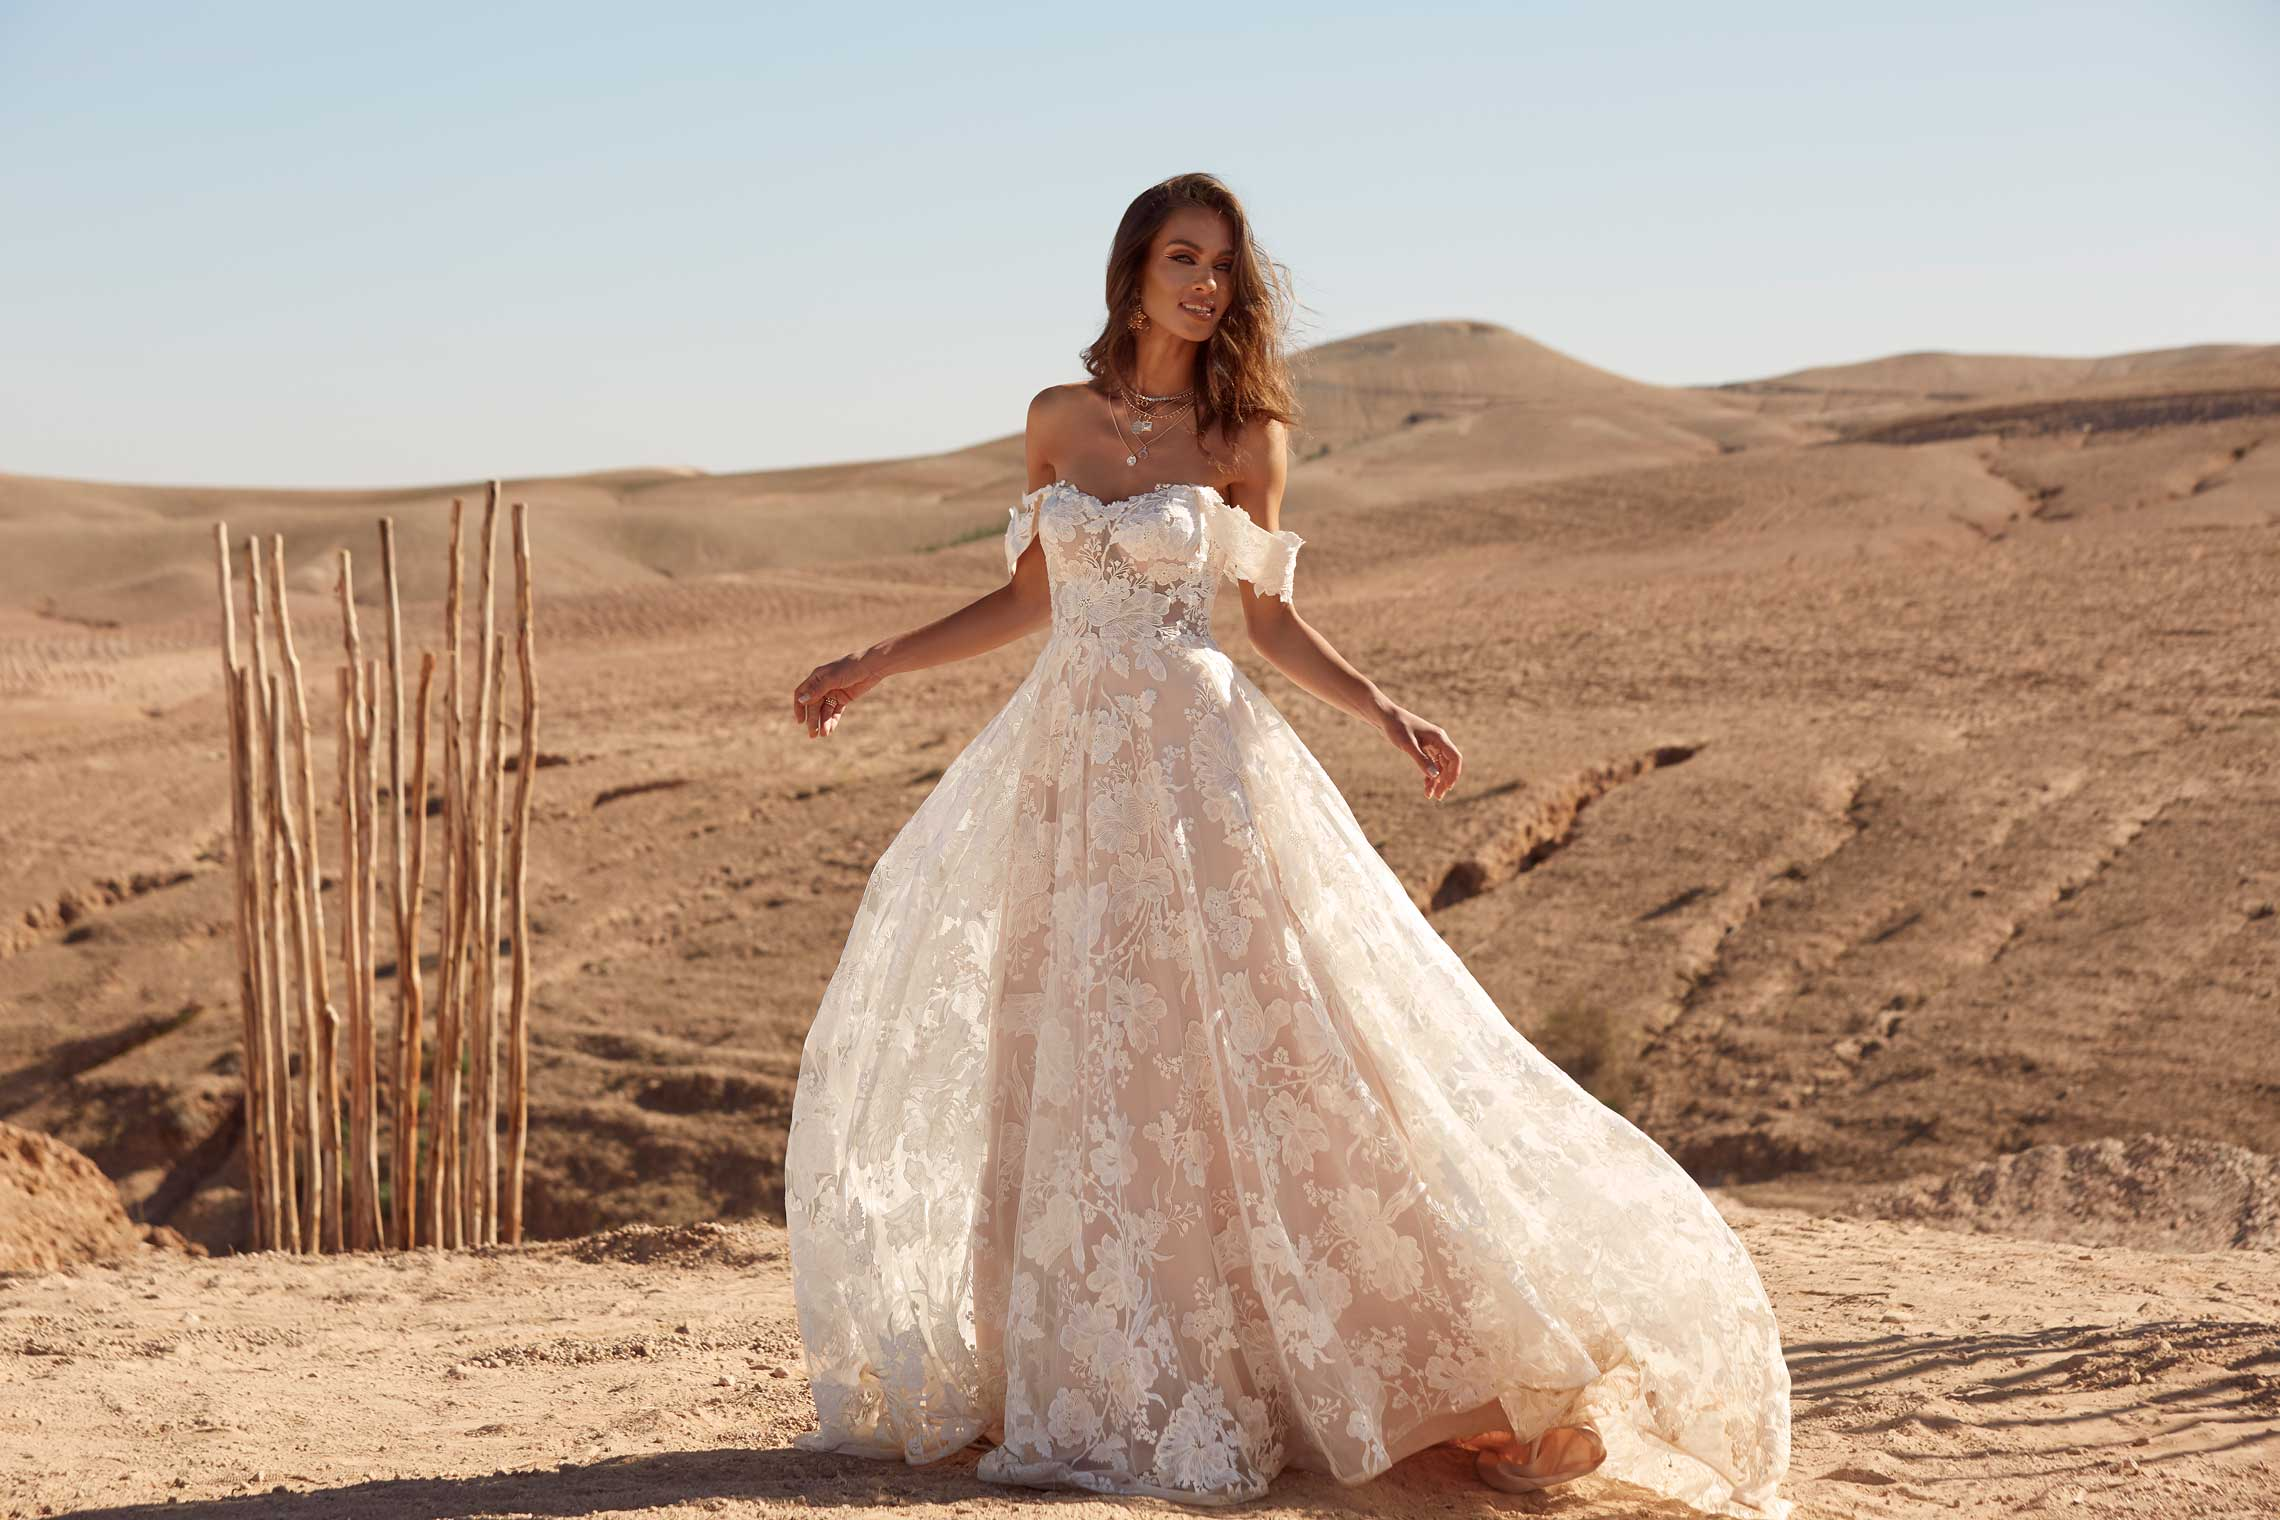 AMELIE-ML17545-LACE-AND-TULLE-GOWN-WITH-FITTED-BODICE-AND-FLOATY-TULLE-SKIRT-WITH-DETACHABLE-OFF-SHOULDER-STRAPS-WEDDING-DRESS-MADI-LANE-BRIDAL13